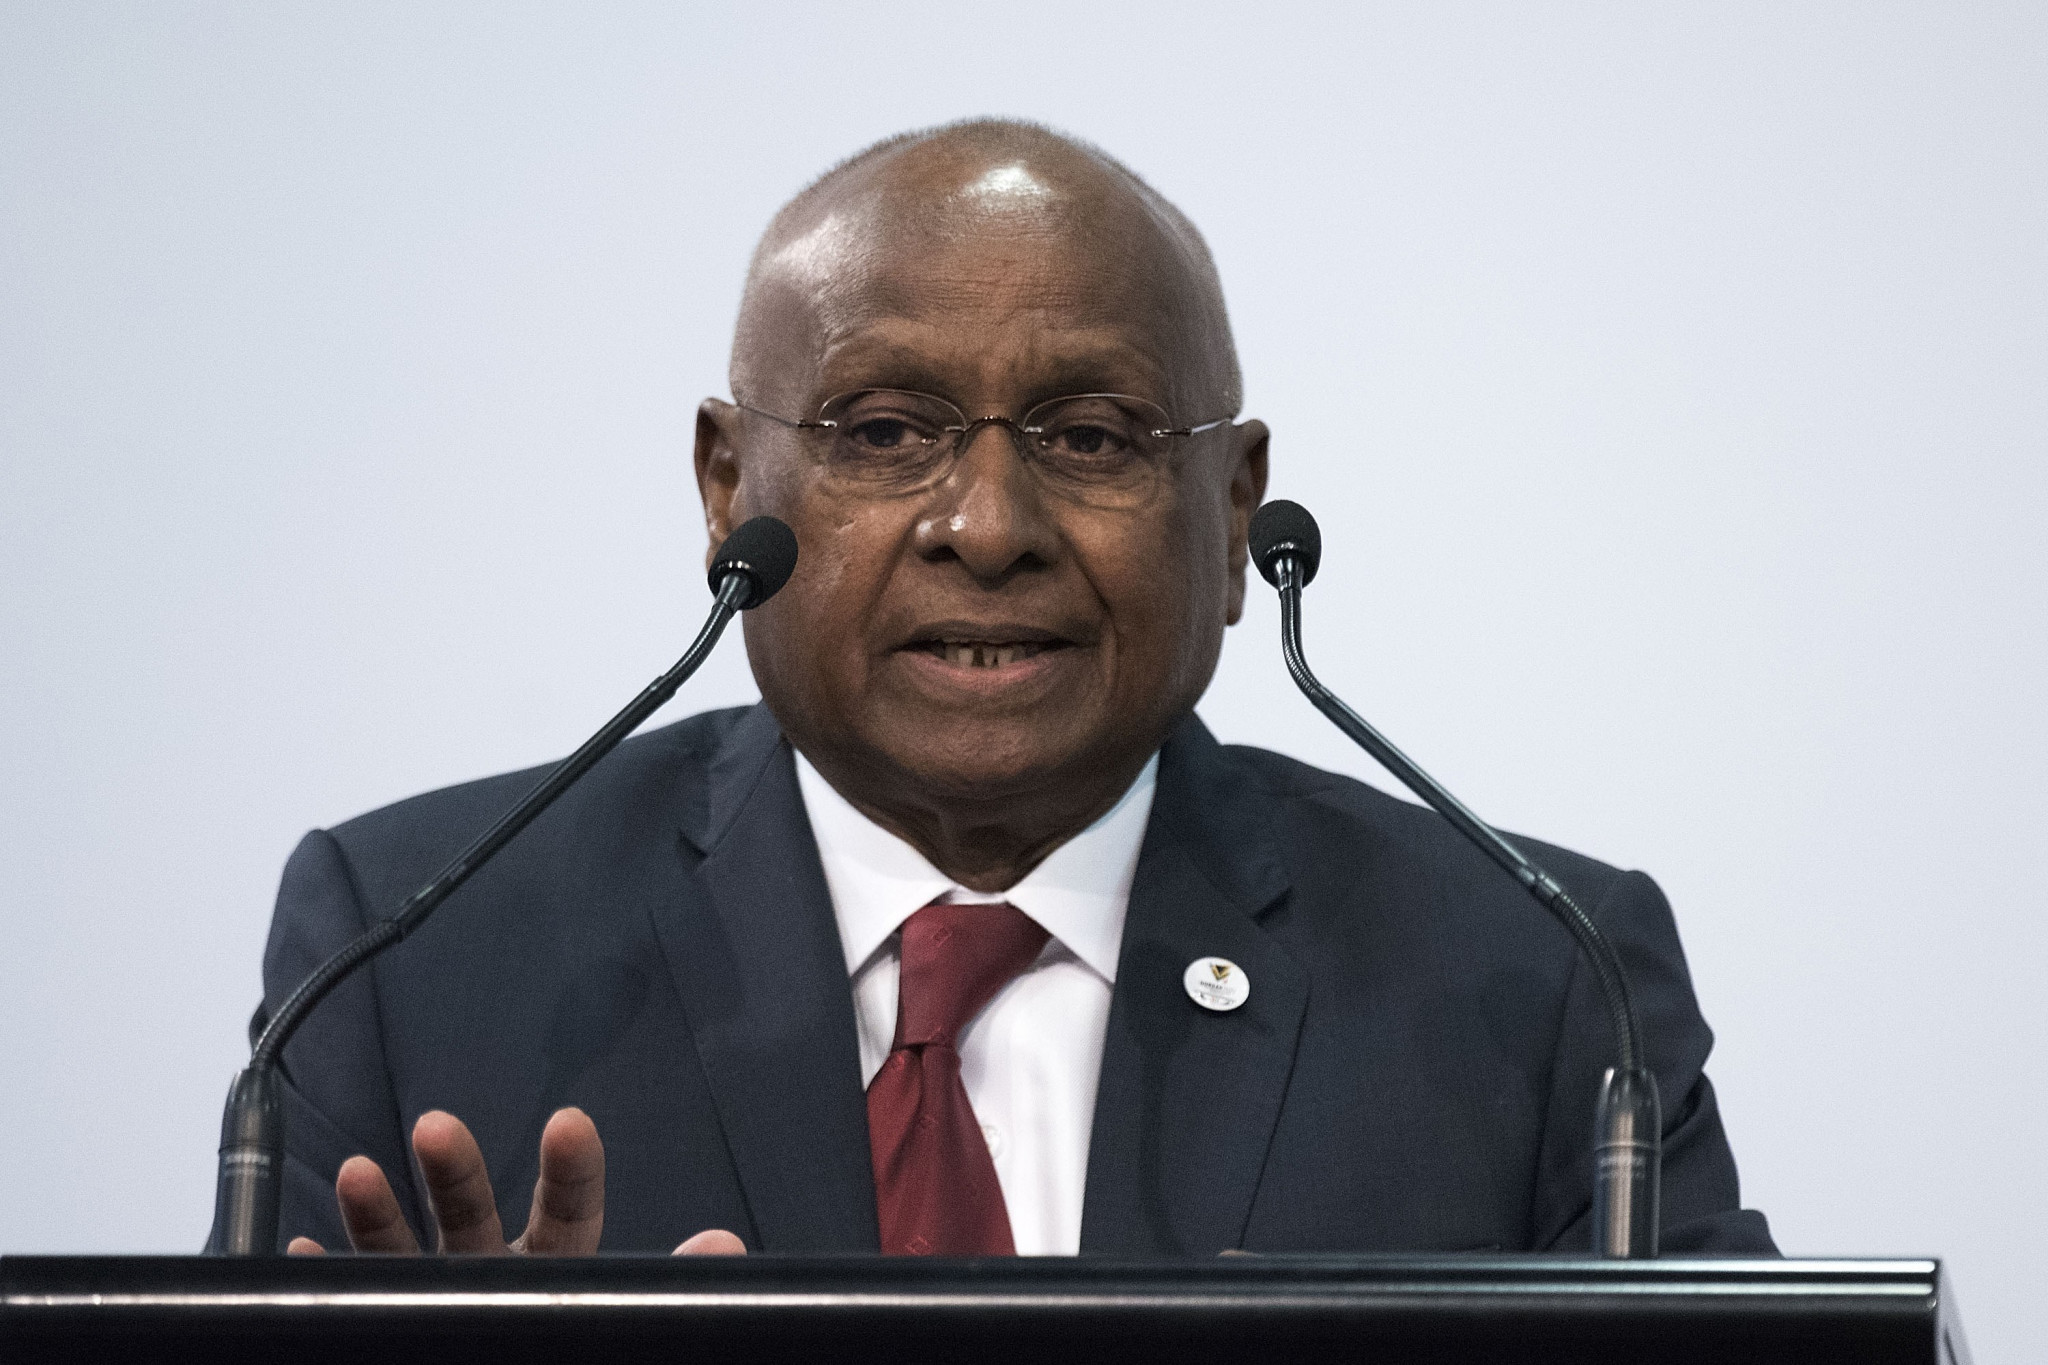 Sam Ramsamy ceased to be an IOC member at the end of 2018 after reaching the age limit ©Getty Images